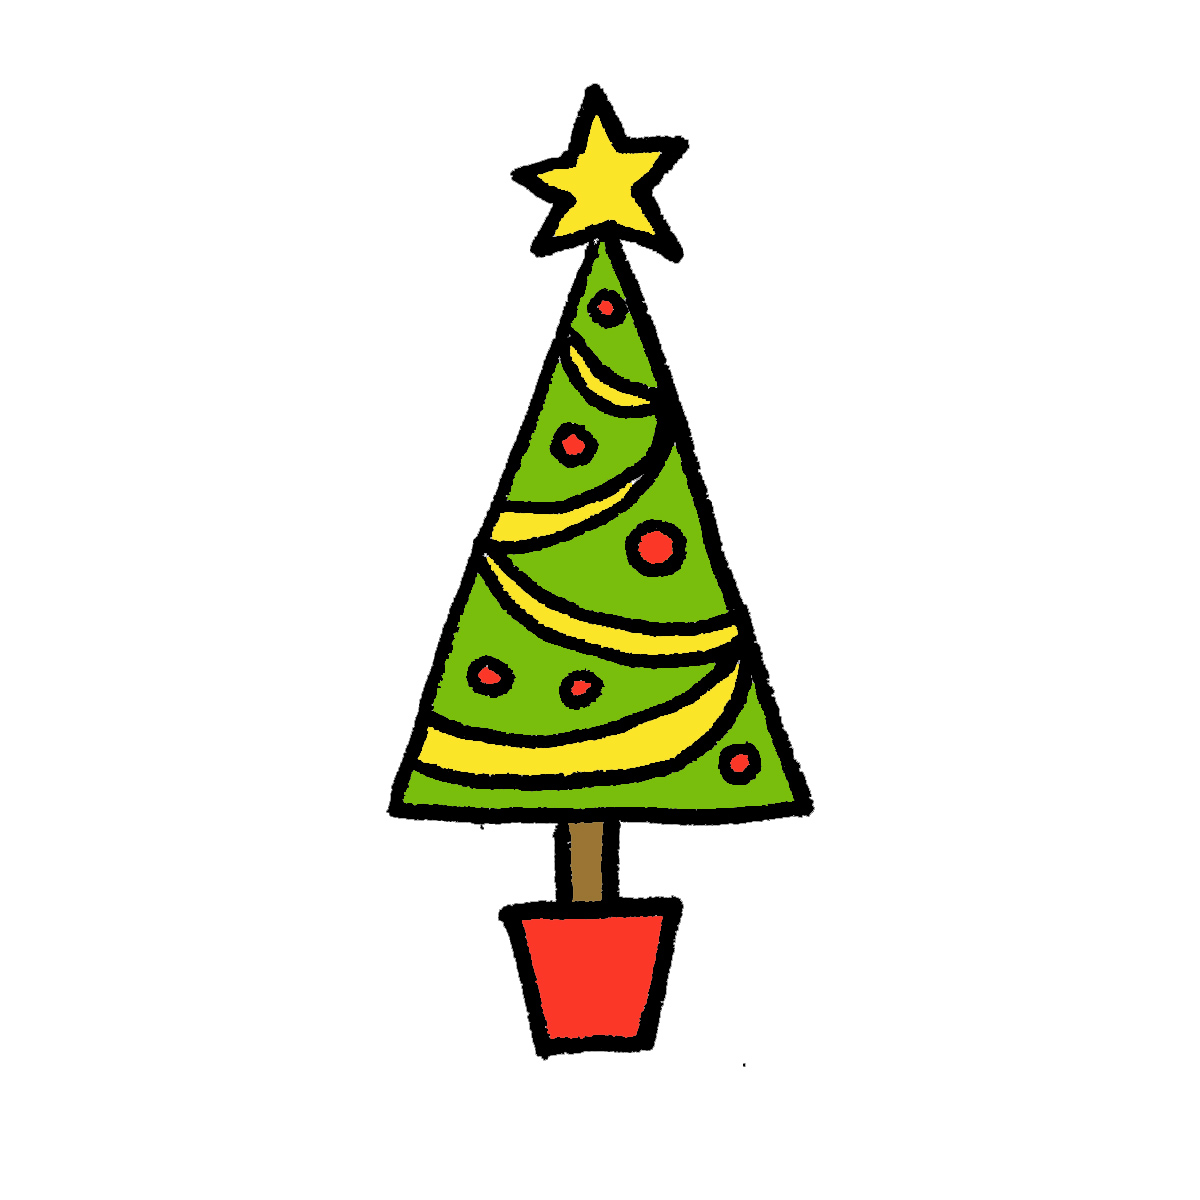 how to draw a christmas tree 4 cartoon tutorials how to draw a christmas tree 4 cartoon